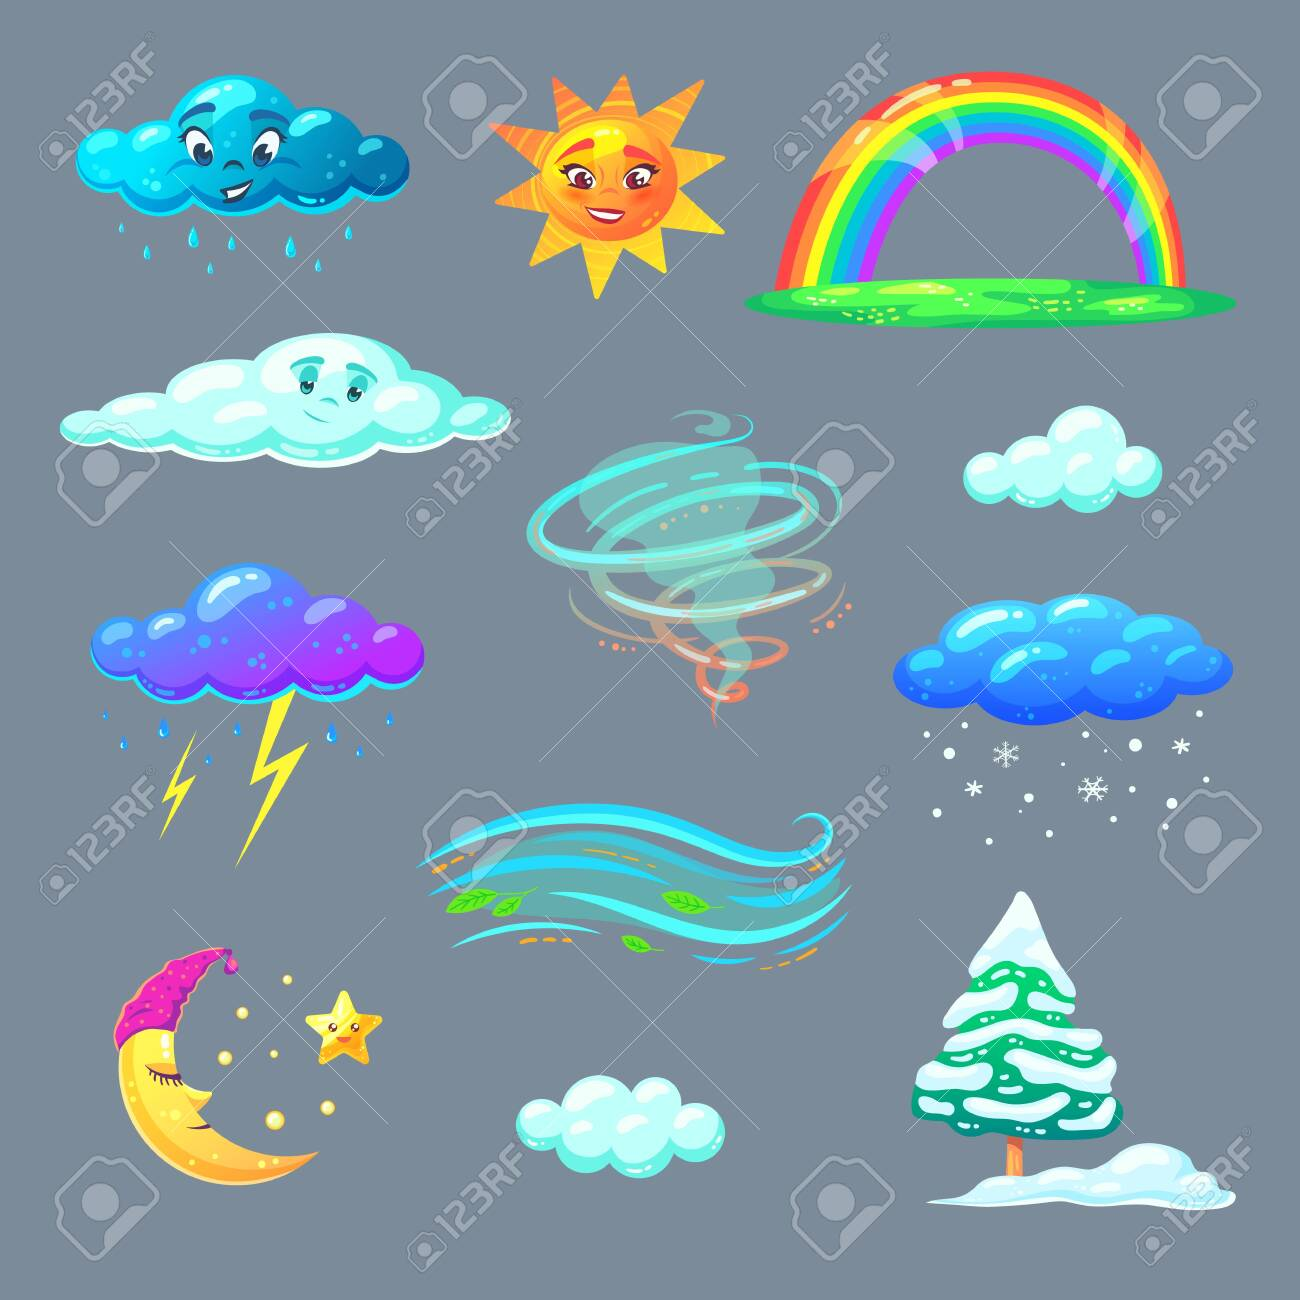 Cute weather icons in cartoon style. Nature elements for kids education. Vector illustration. - 124388395